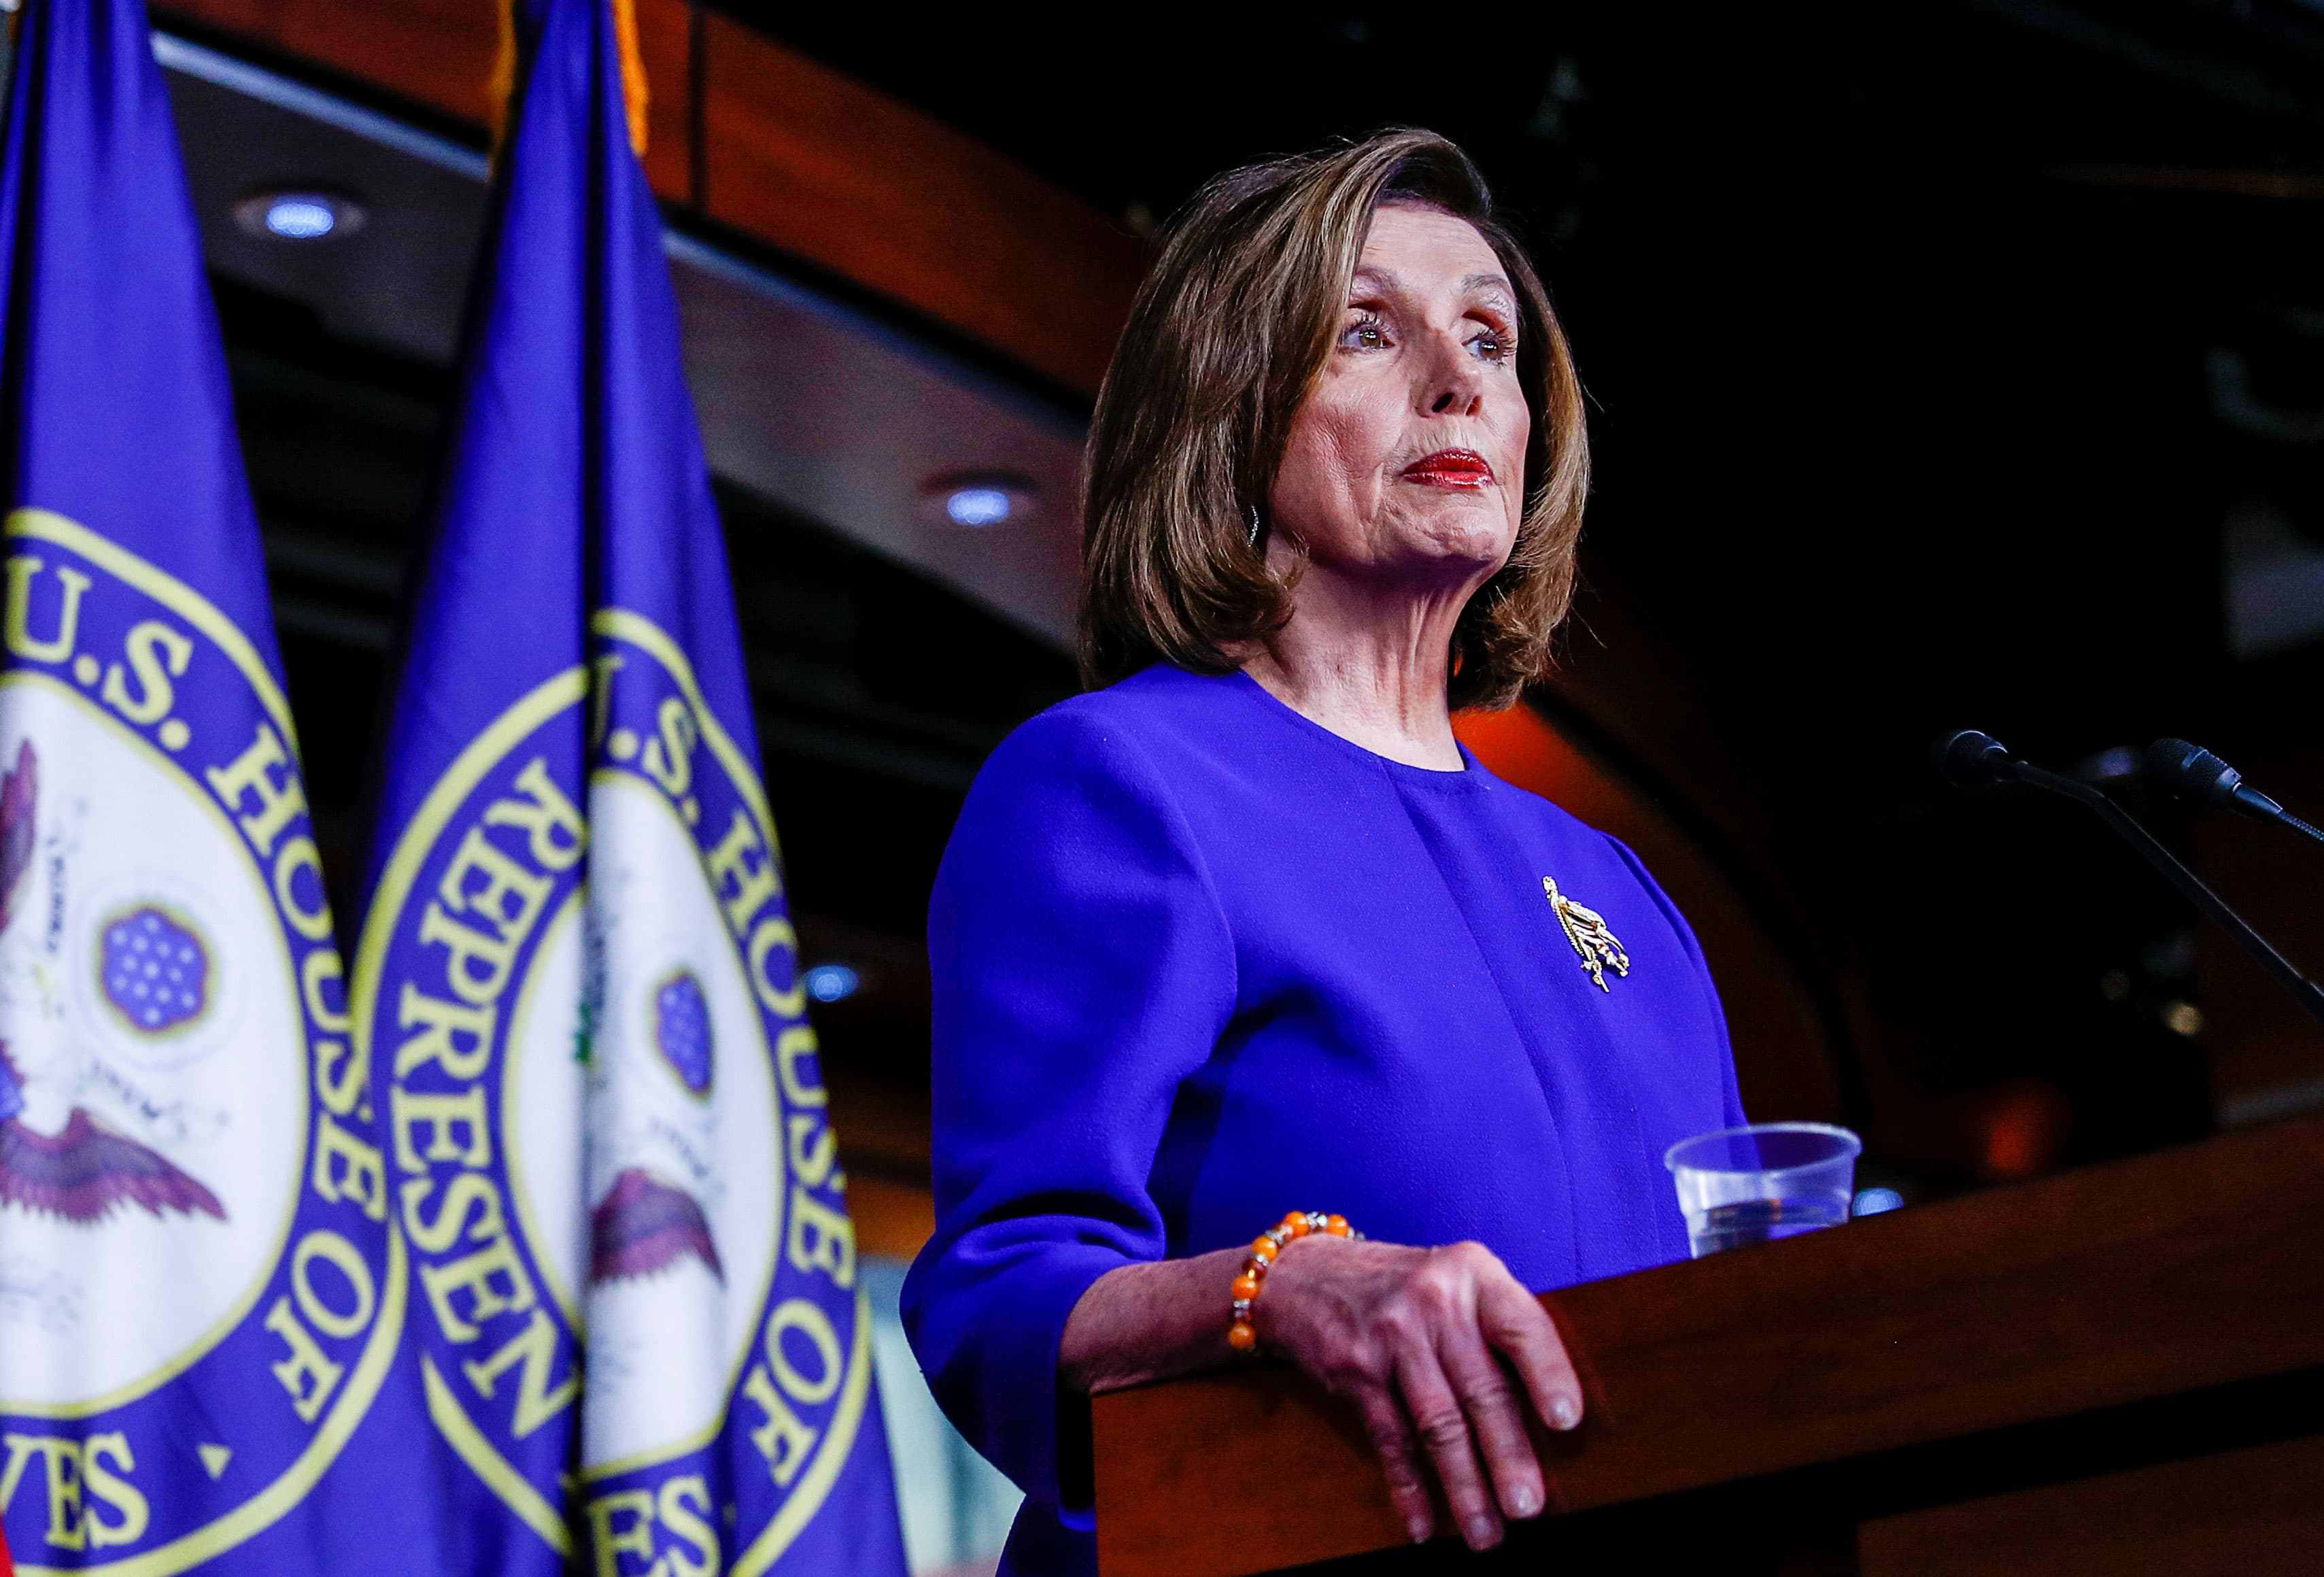 Watch: Nancy Pelosi holds news conference amid debate over articles of impeachment, Iran tensions